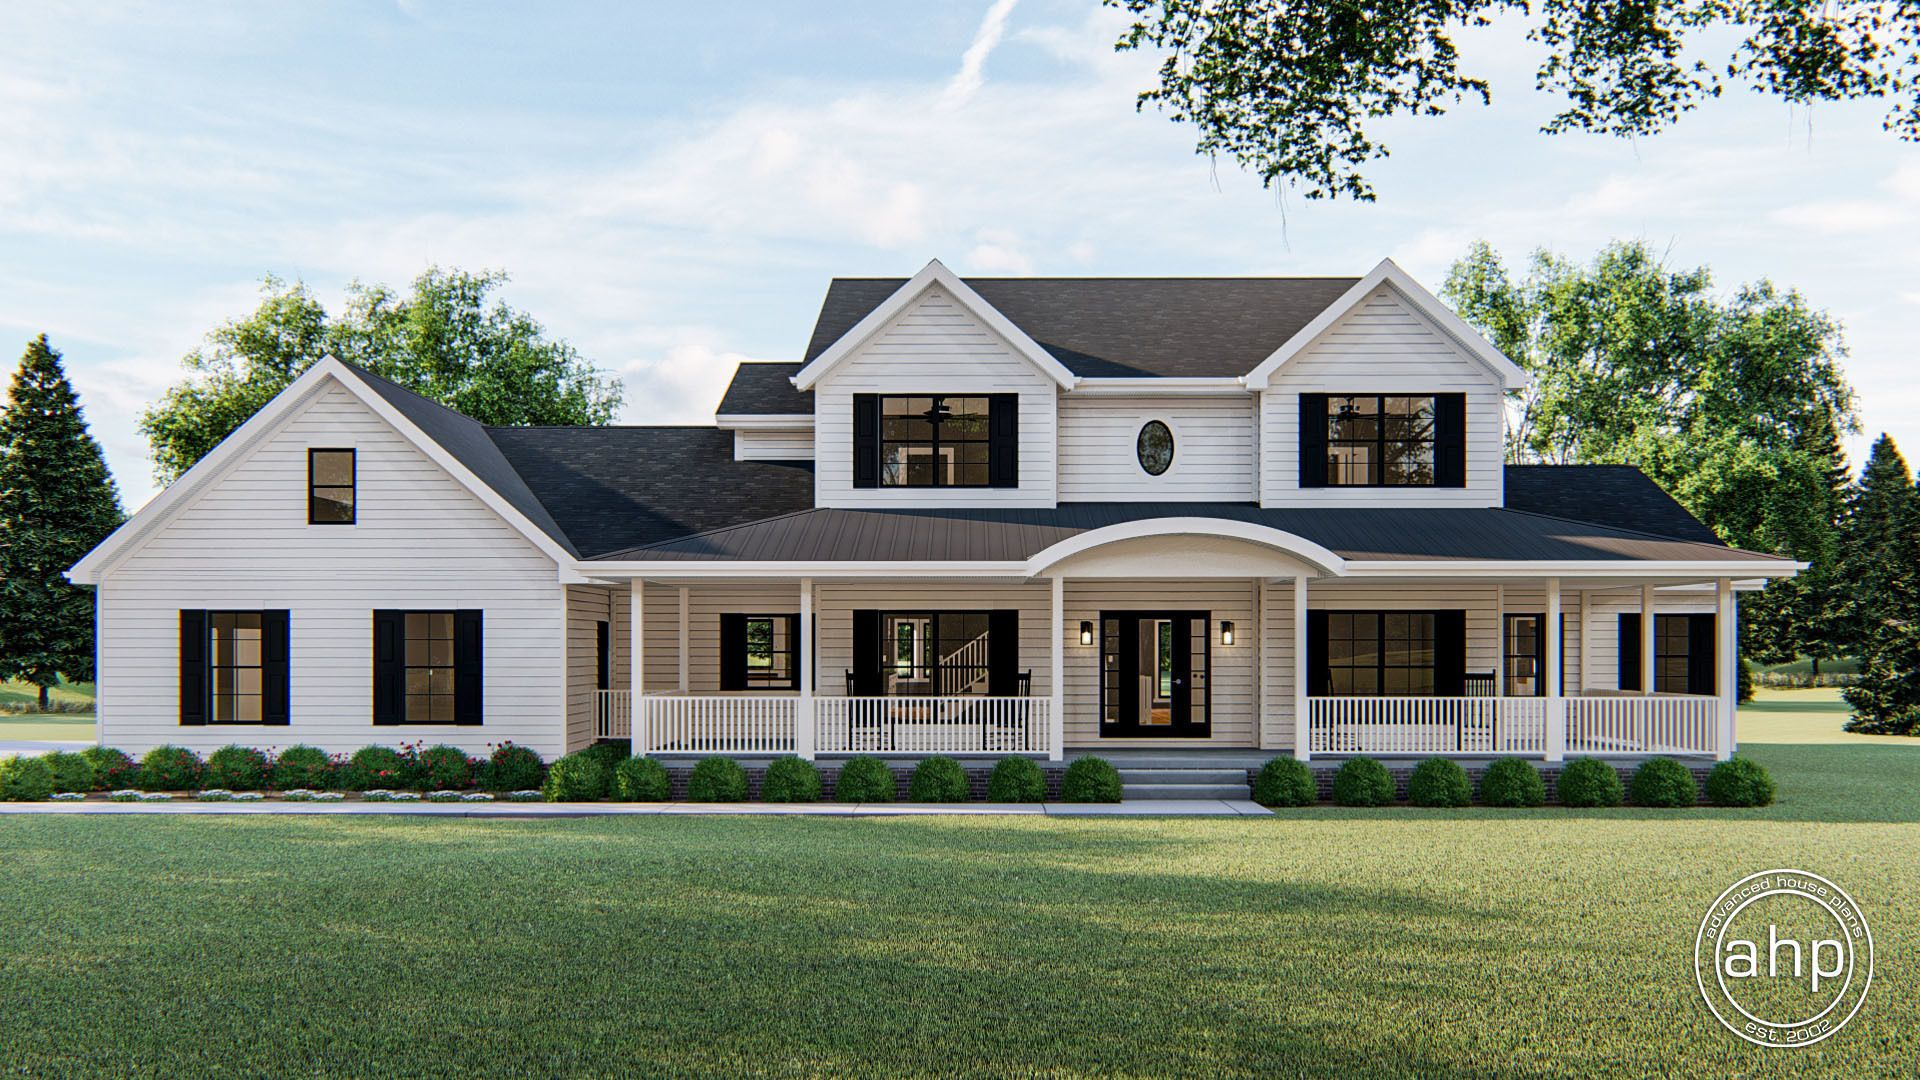 1 5 Story House Plans With Walkout Basement In 2020 House Plans Farmhouse Country Style House Plans Basement House Plans